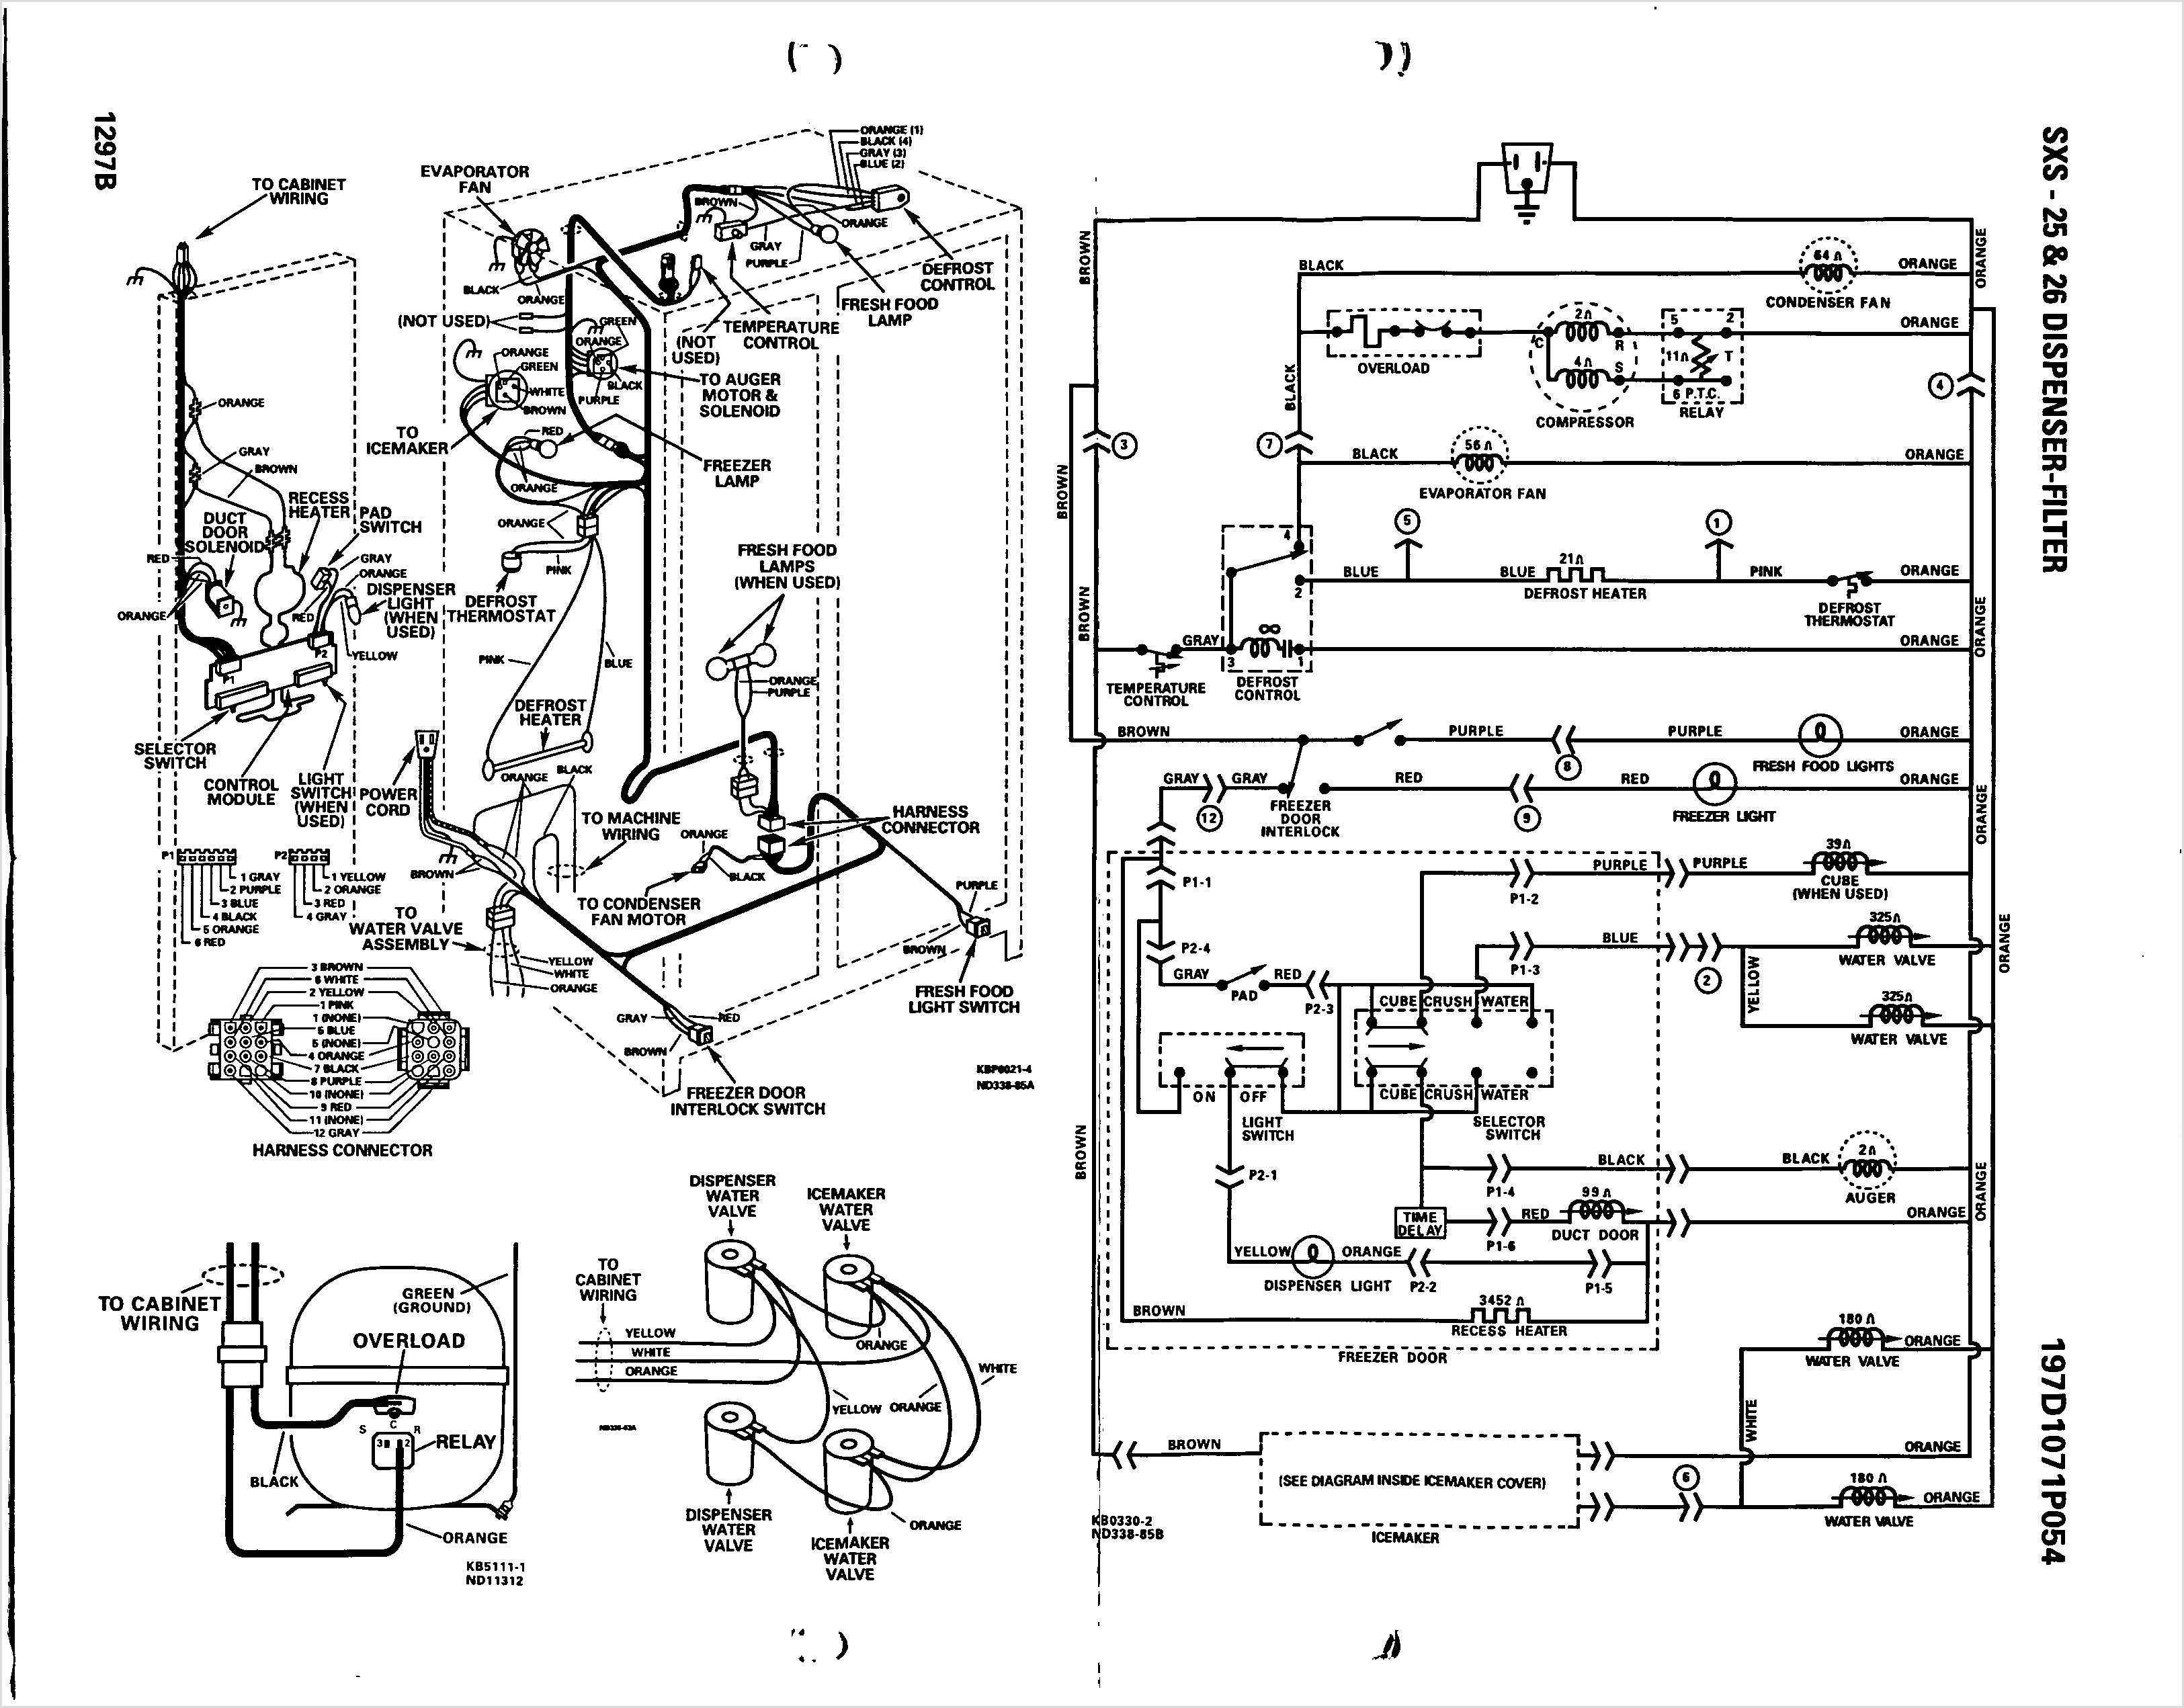 Wiring Diagram Of Washing Machine Http Bookingritzcarlton Info Wiring Diagram Of Washing Whirlpool Dryer Ge Refrigerator Automatic Washing Machine